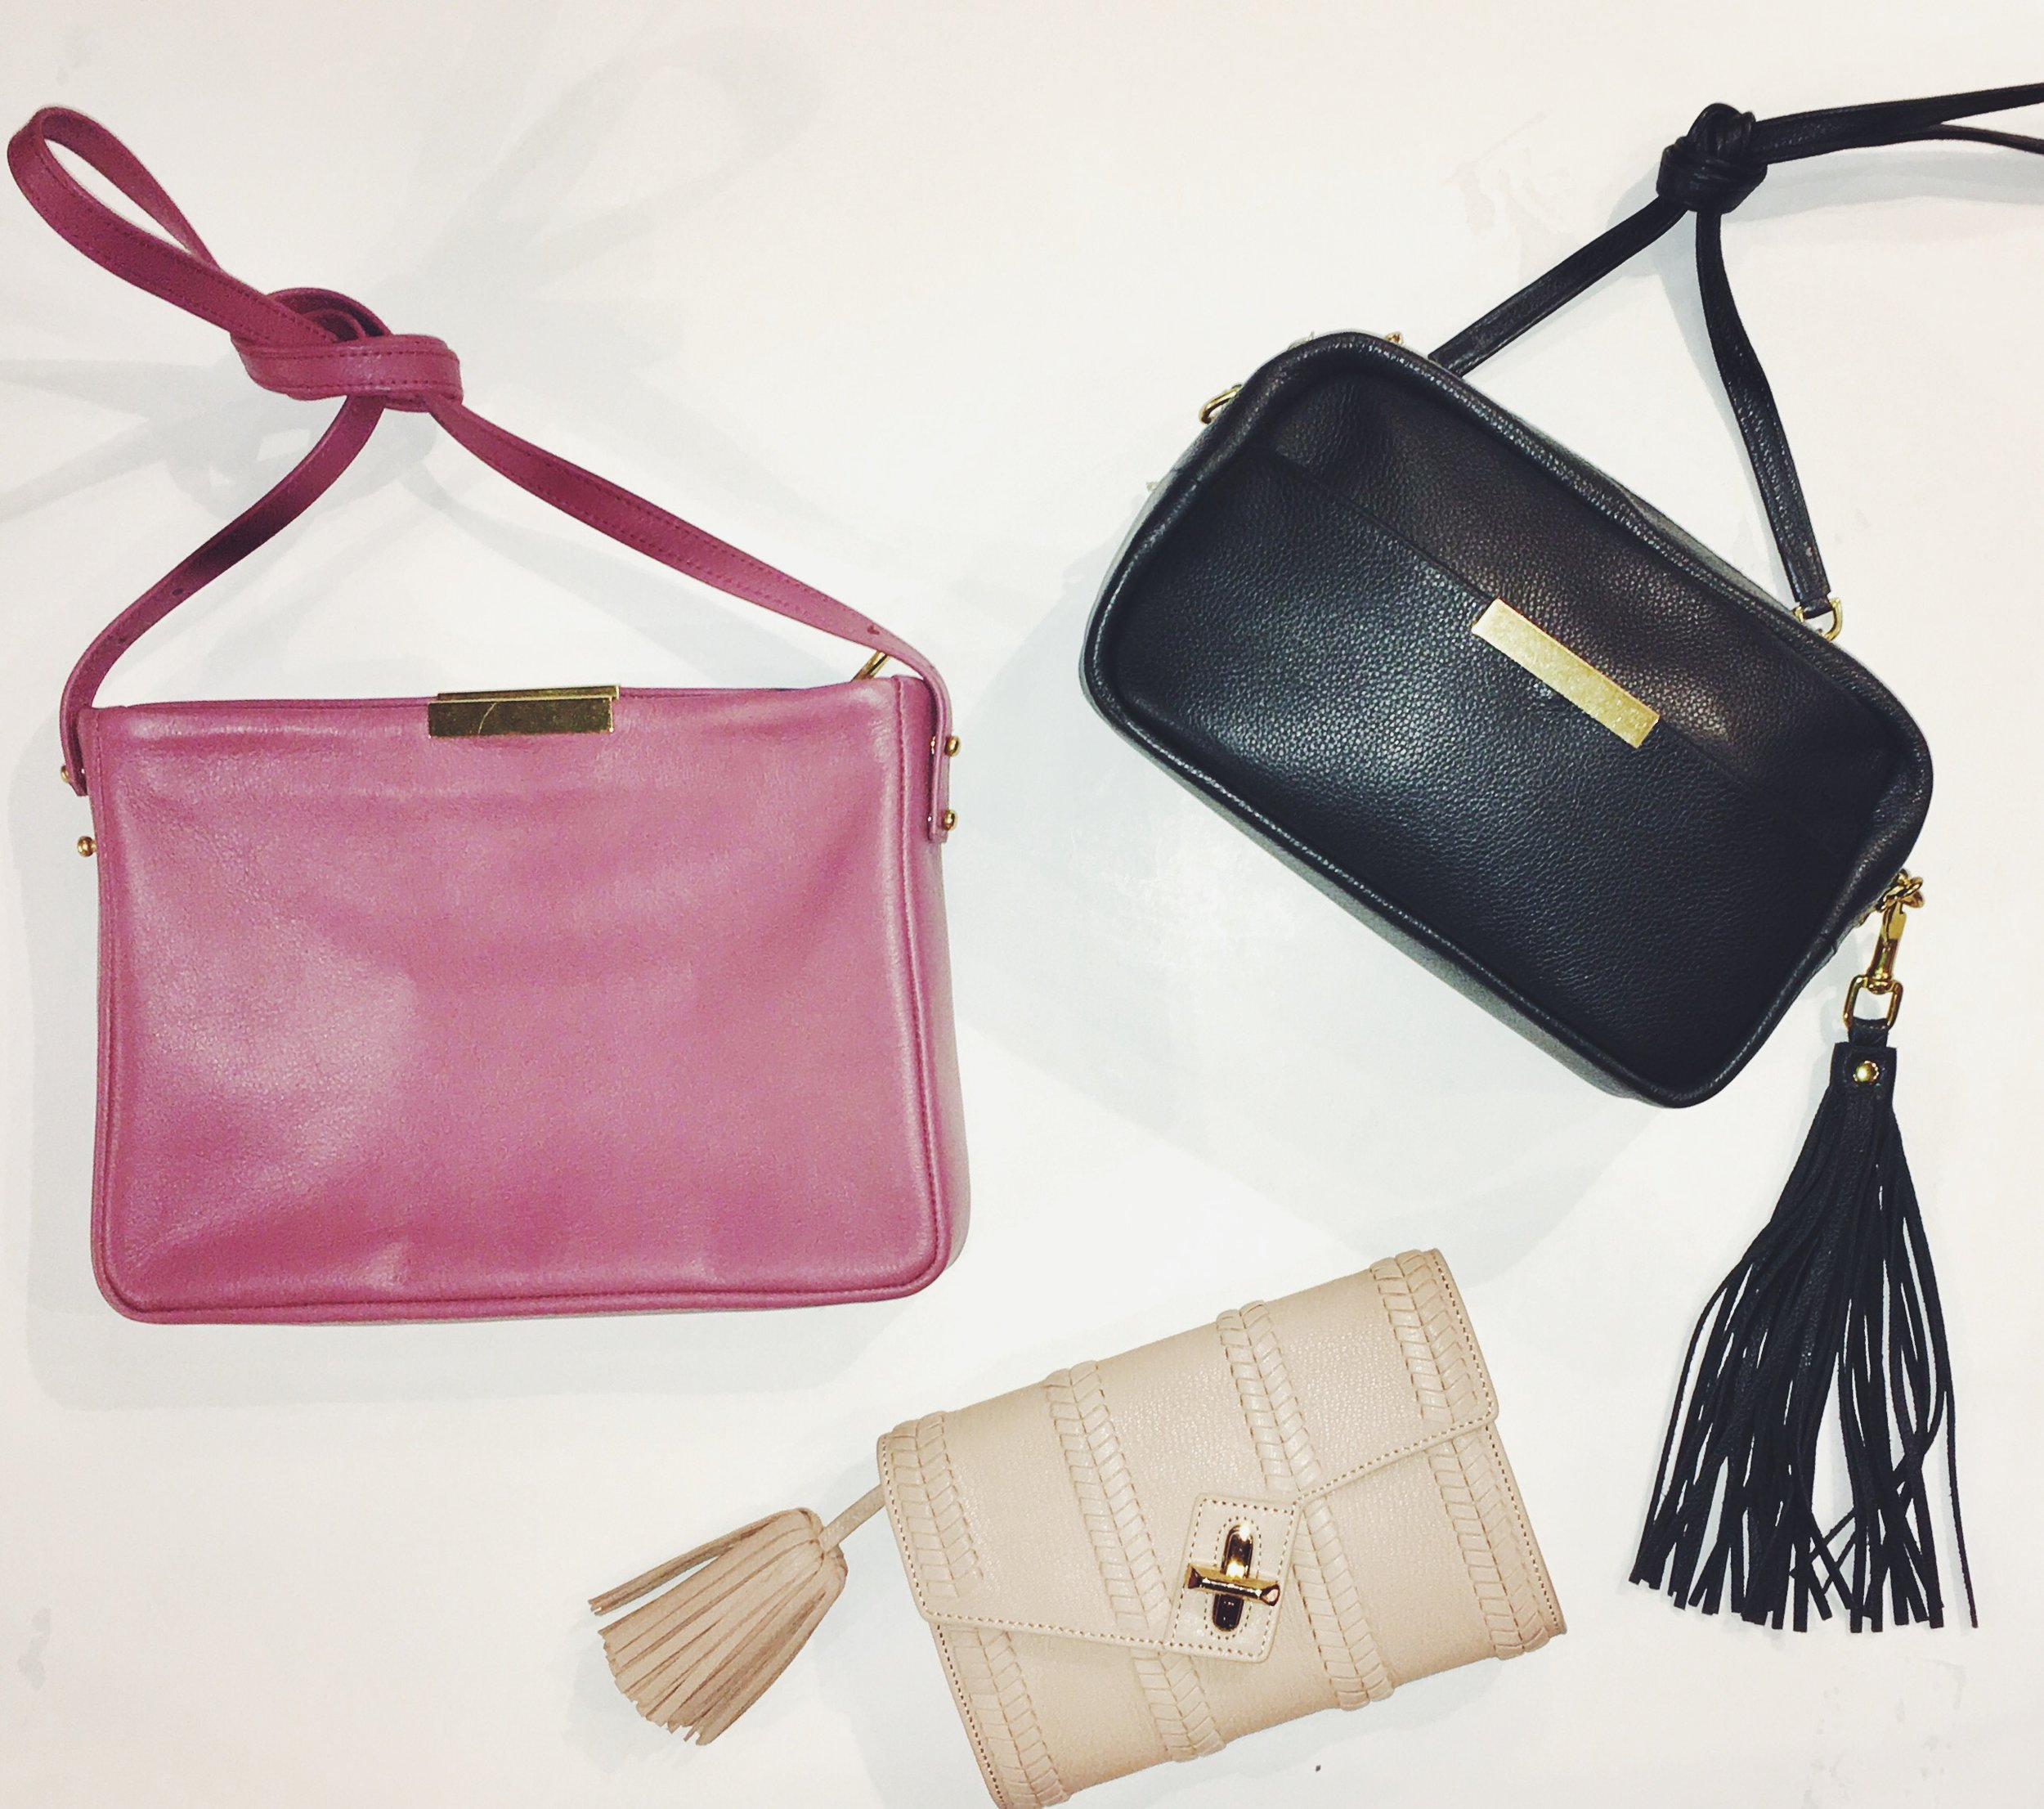 Opelle Leather Purses - $330 & $300 Ela Clutch $350